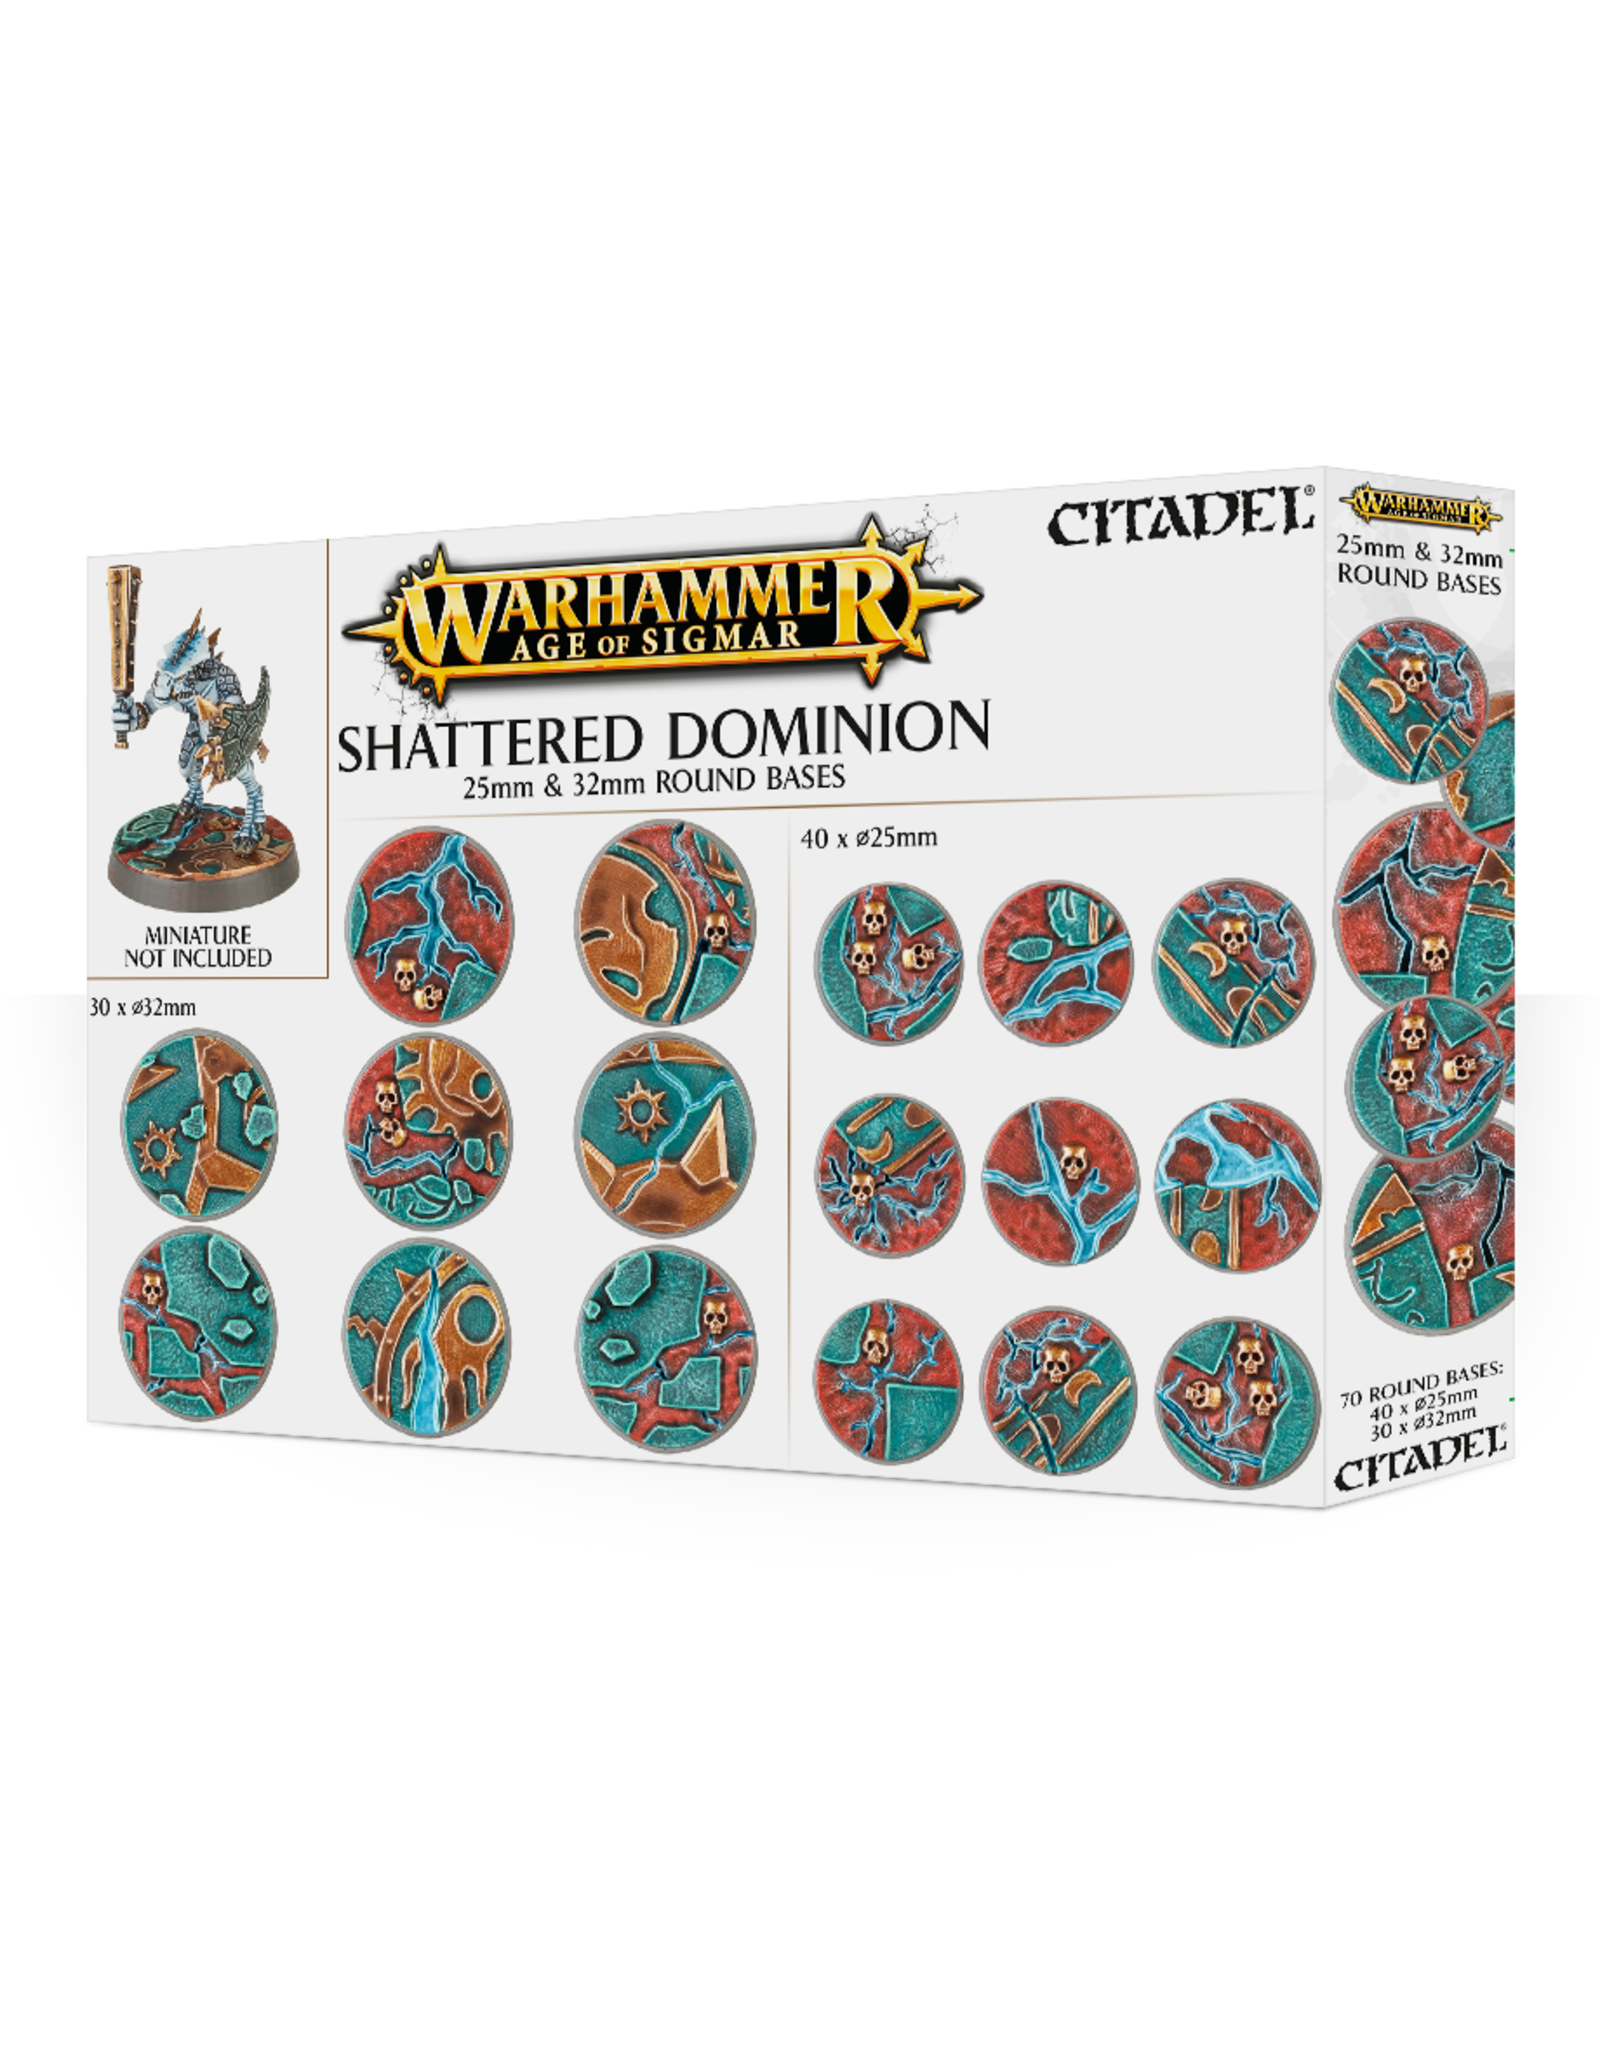 Warhammer Age of Sigmar Shattered Dominion 25mm & 32mm Round Bases